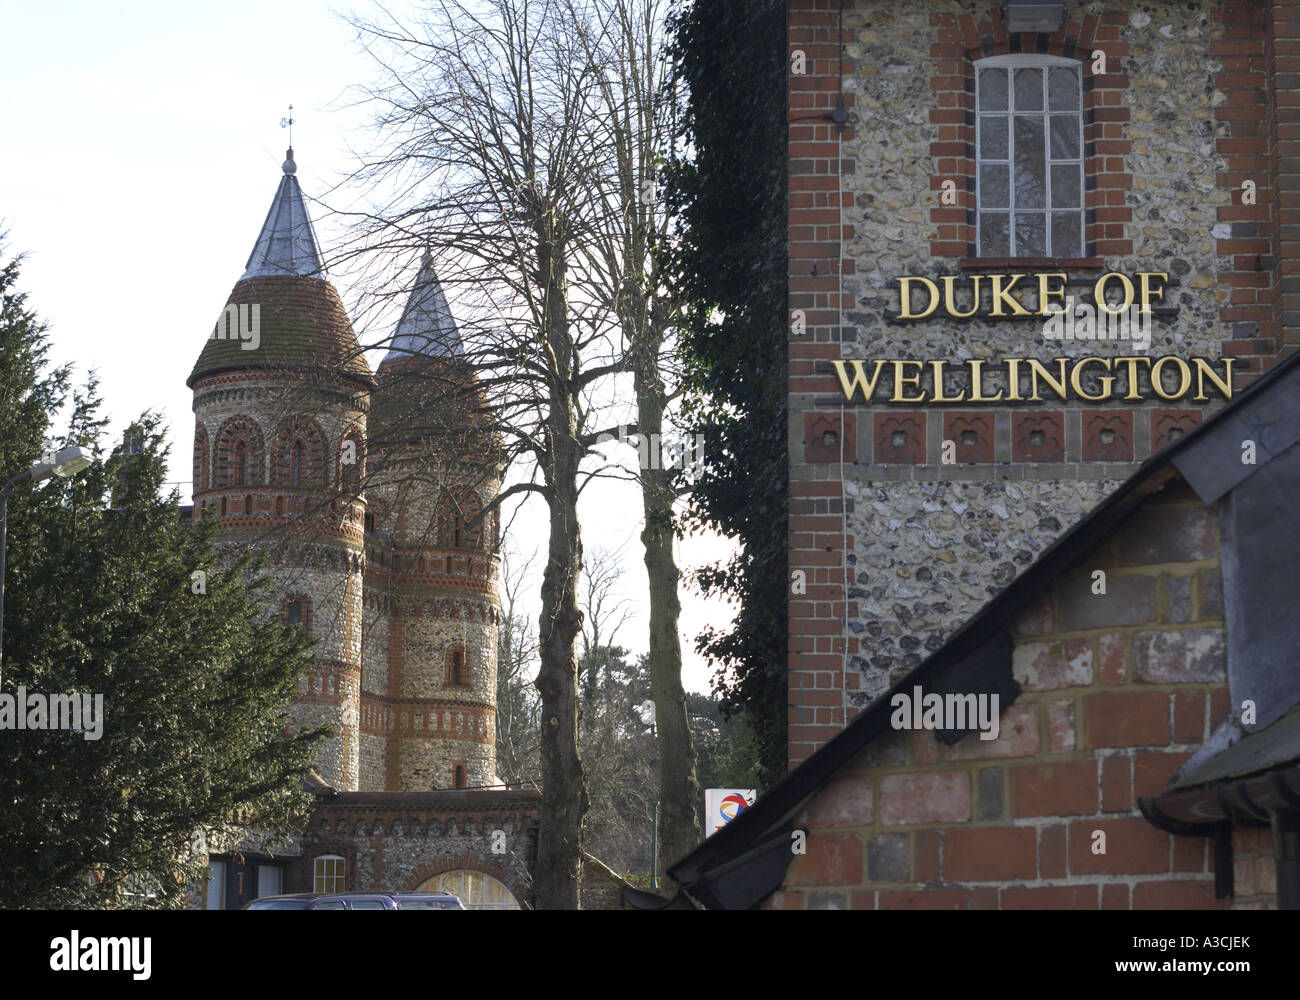 the Duke of Wellington pub and the entrance to Horsley Towers East Horsley Surrey - Stock Image